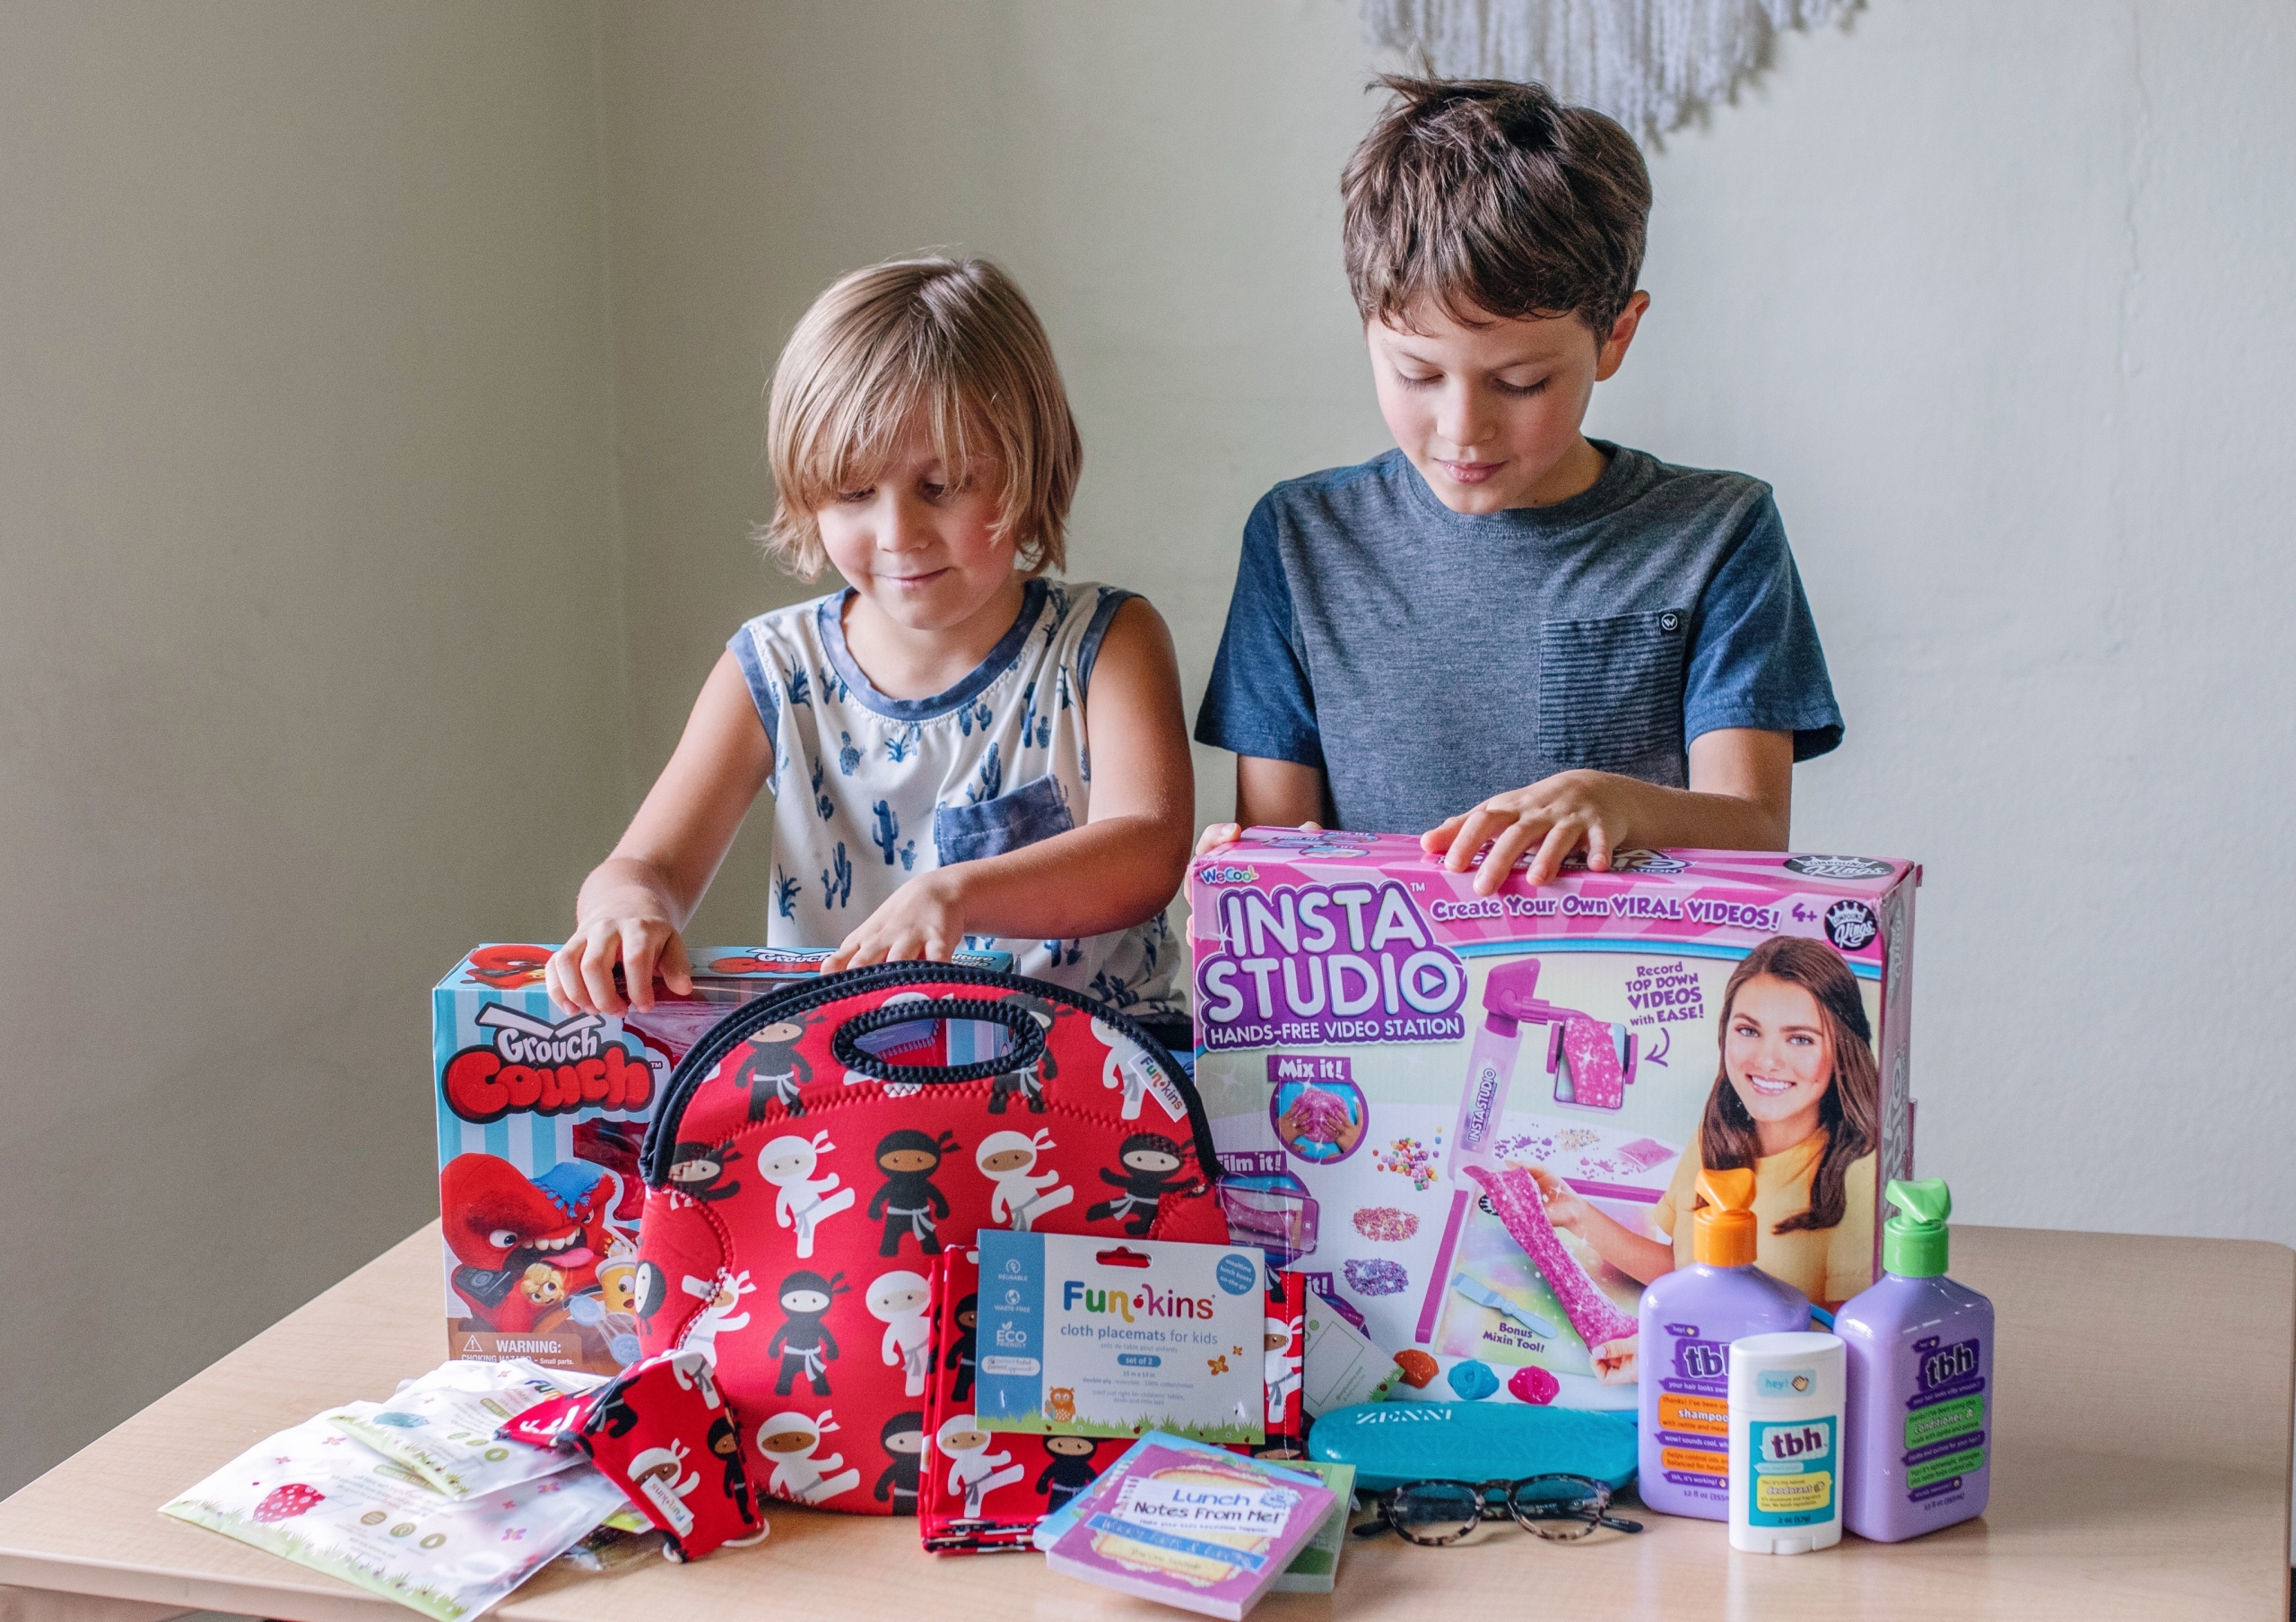 two boys looking at a table full of gifts for back to school